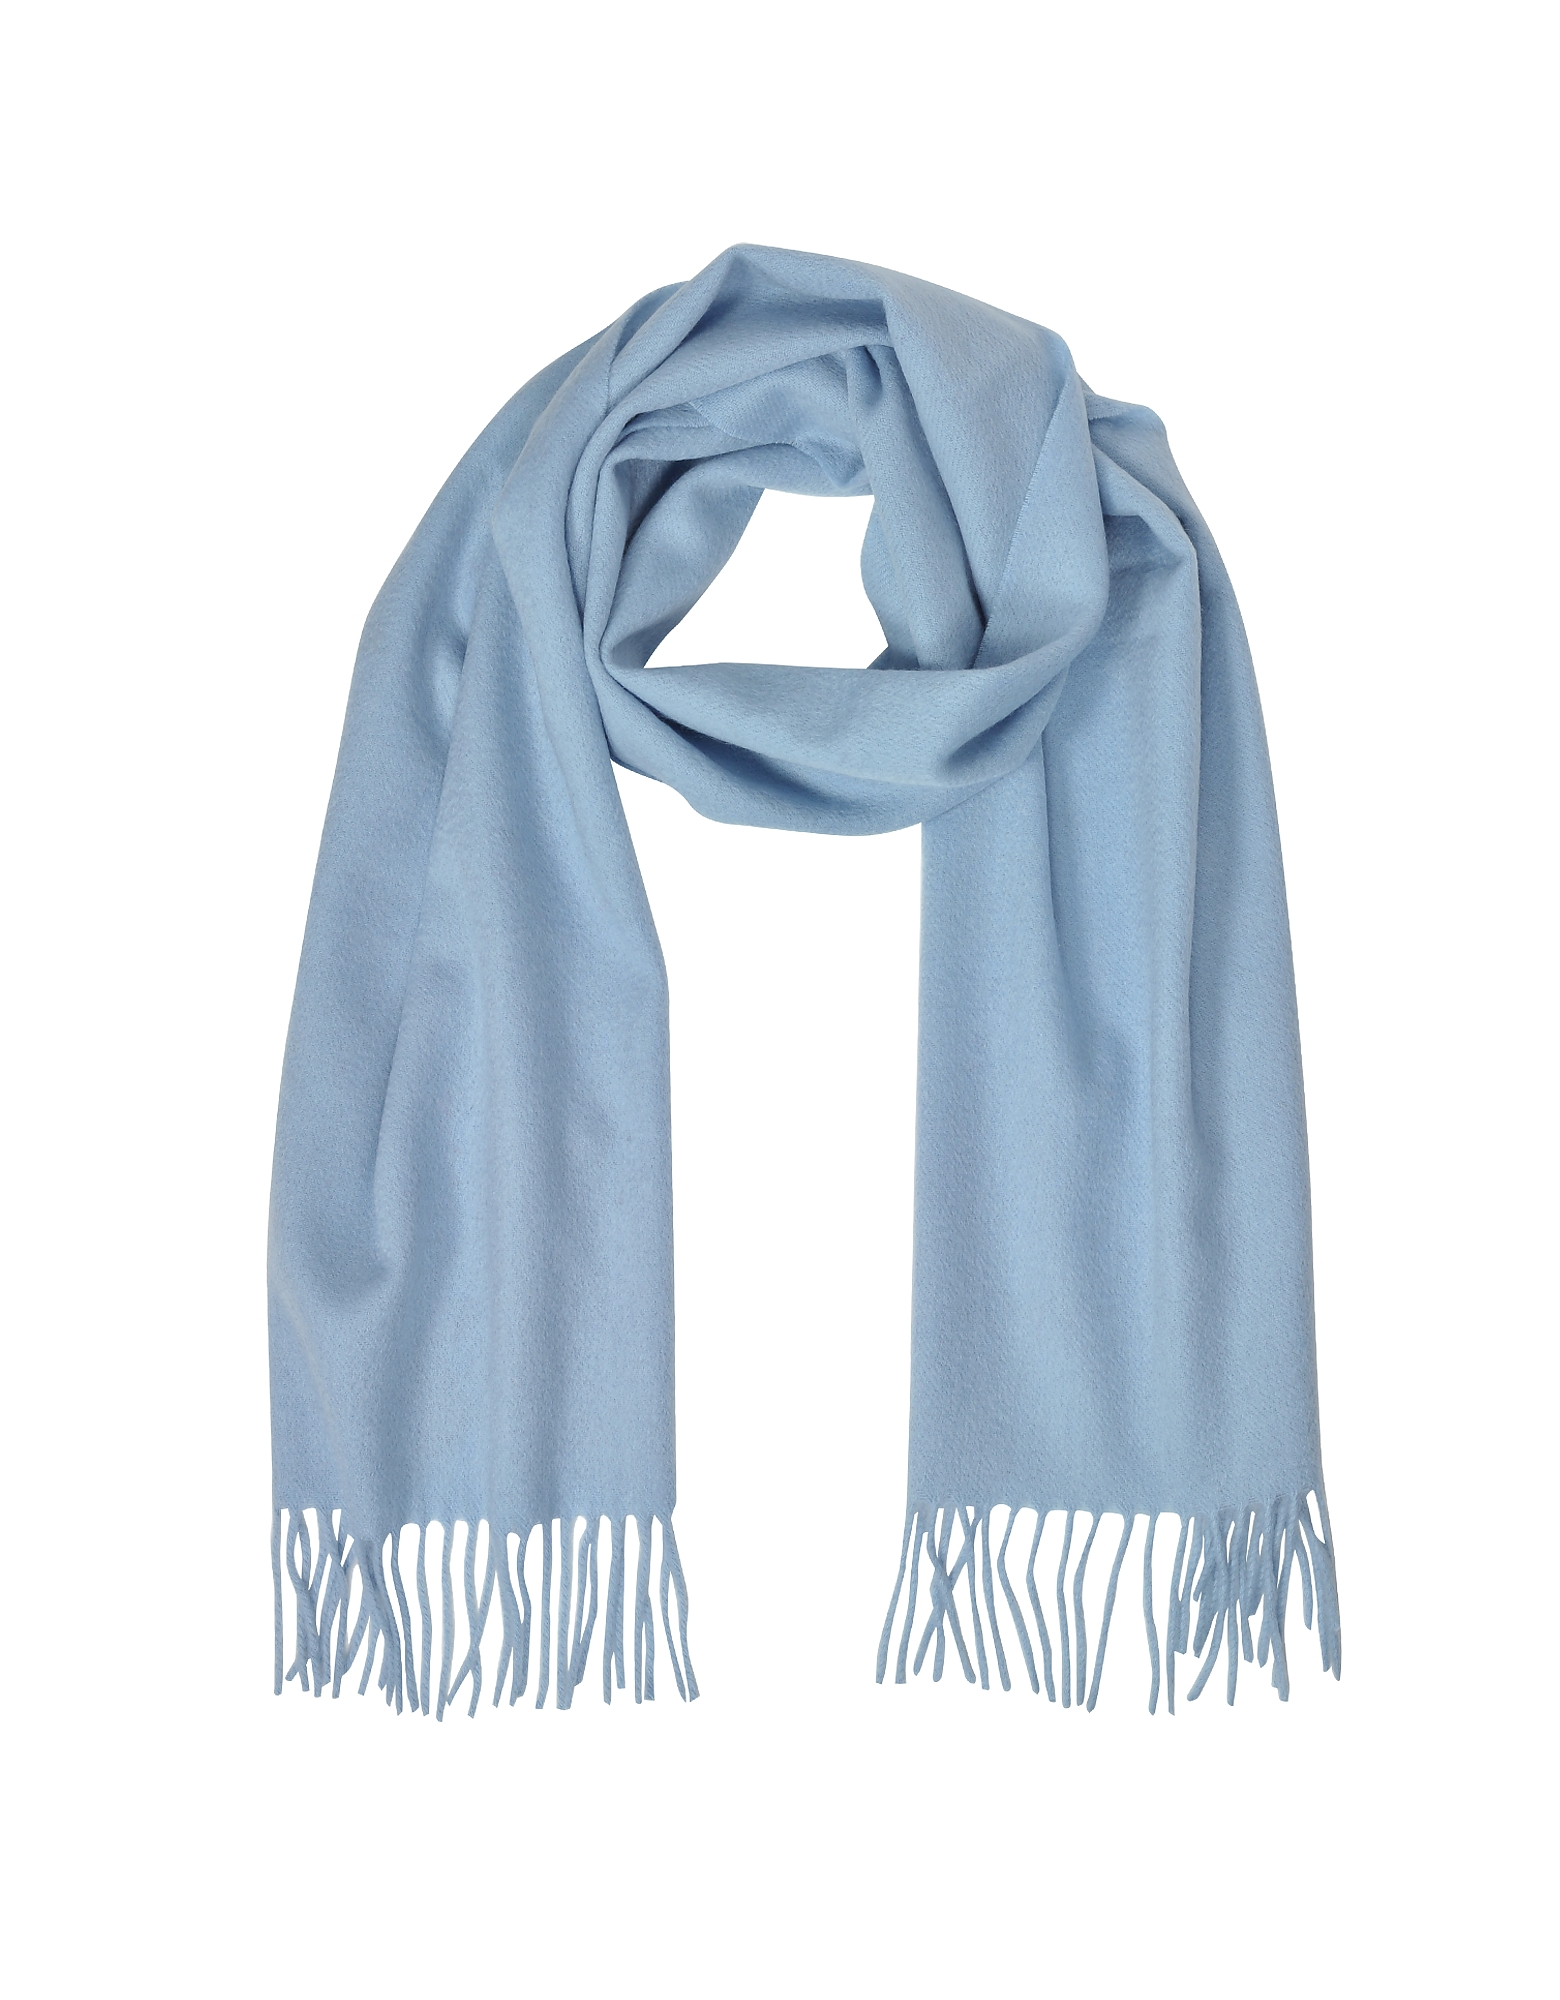 Mila Schon Men's Scarves, Cashmere and Wool Fringed Long Scarf